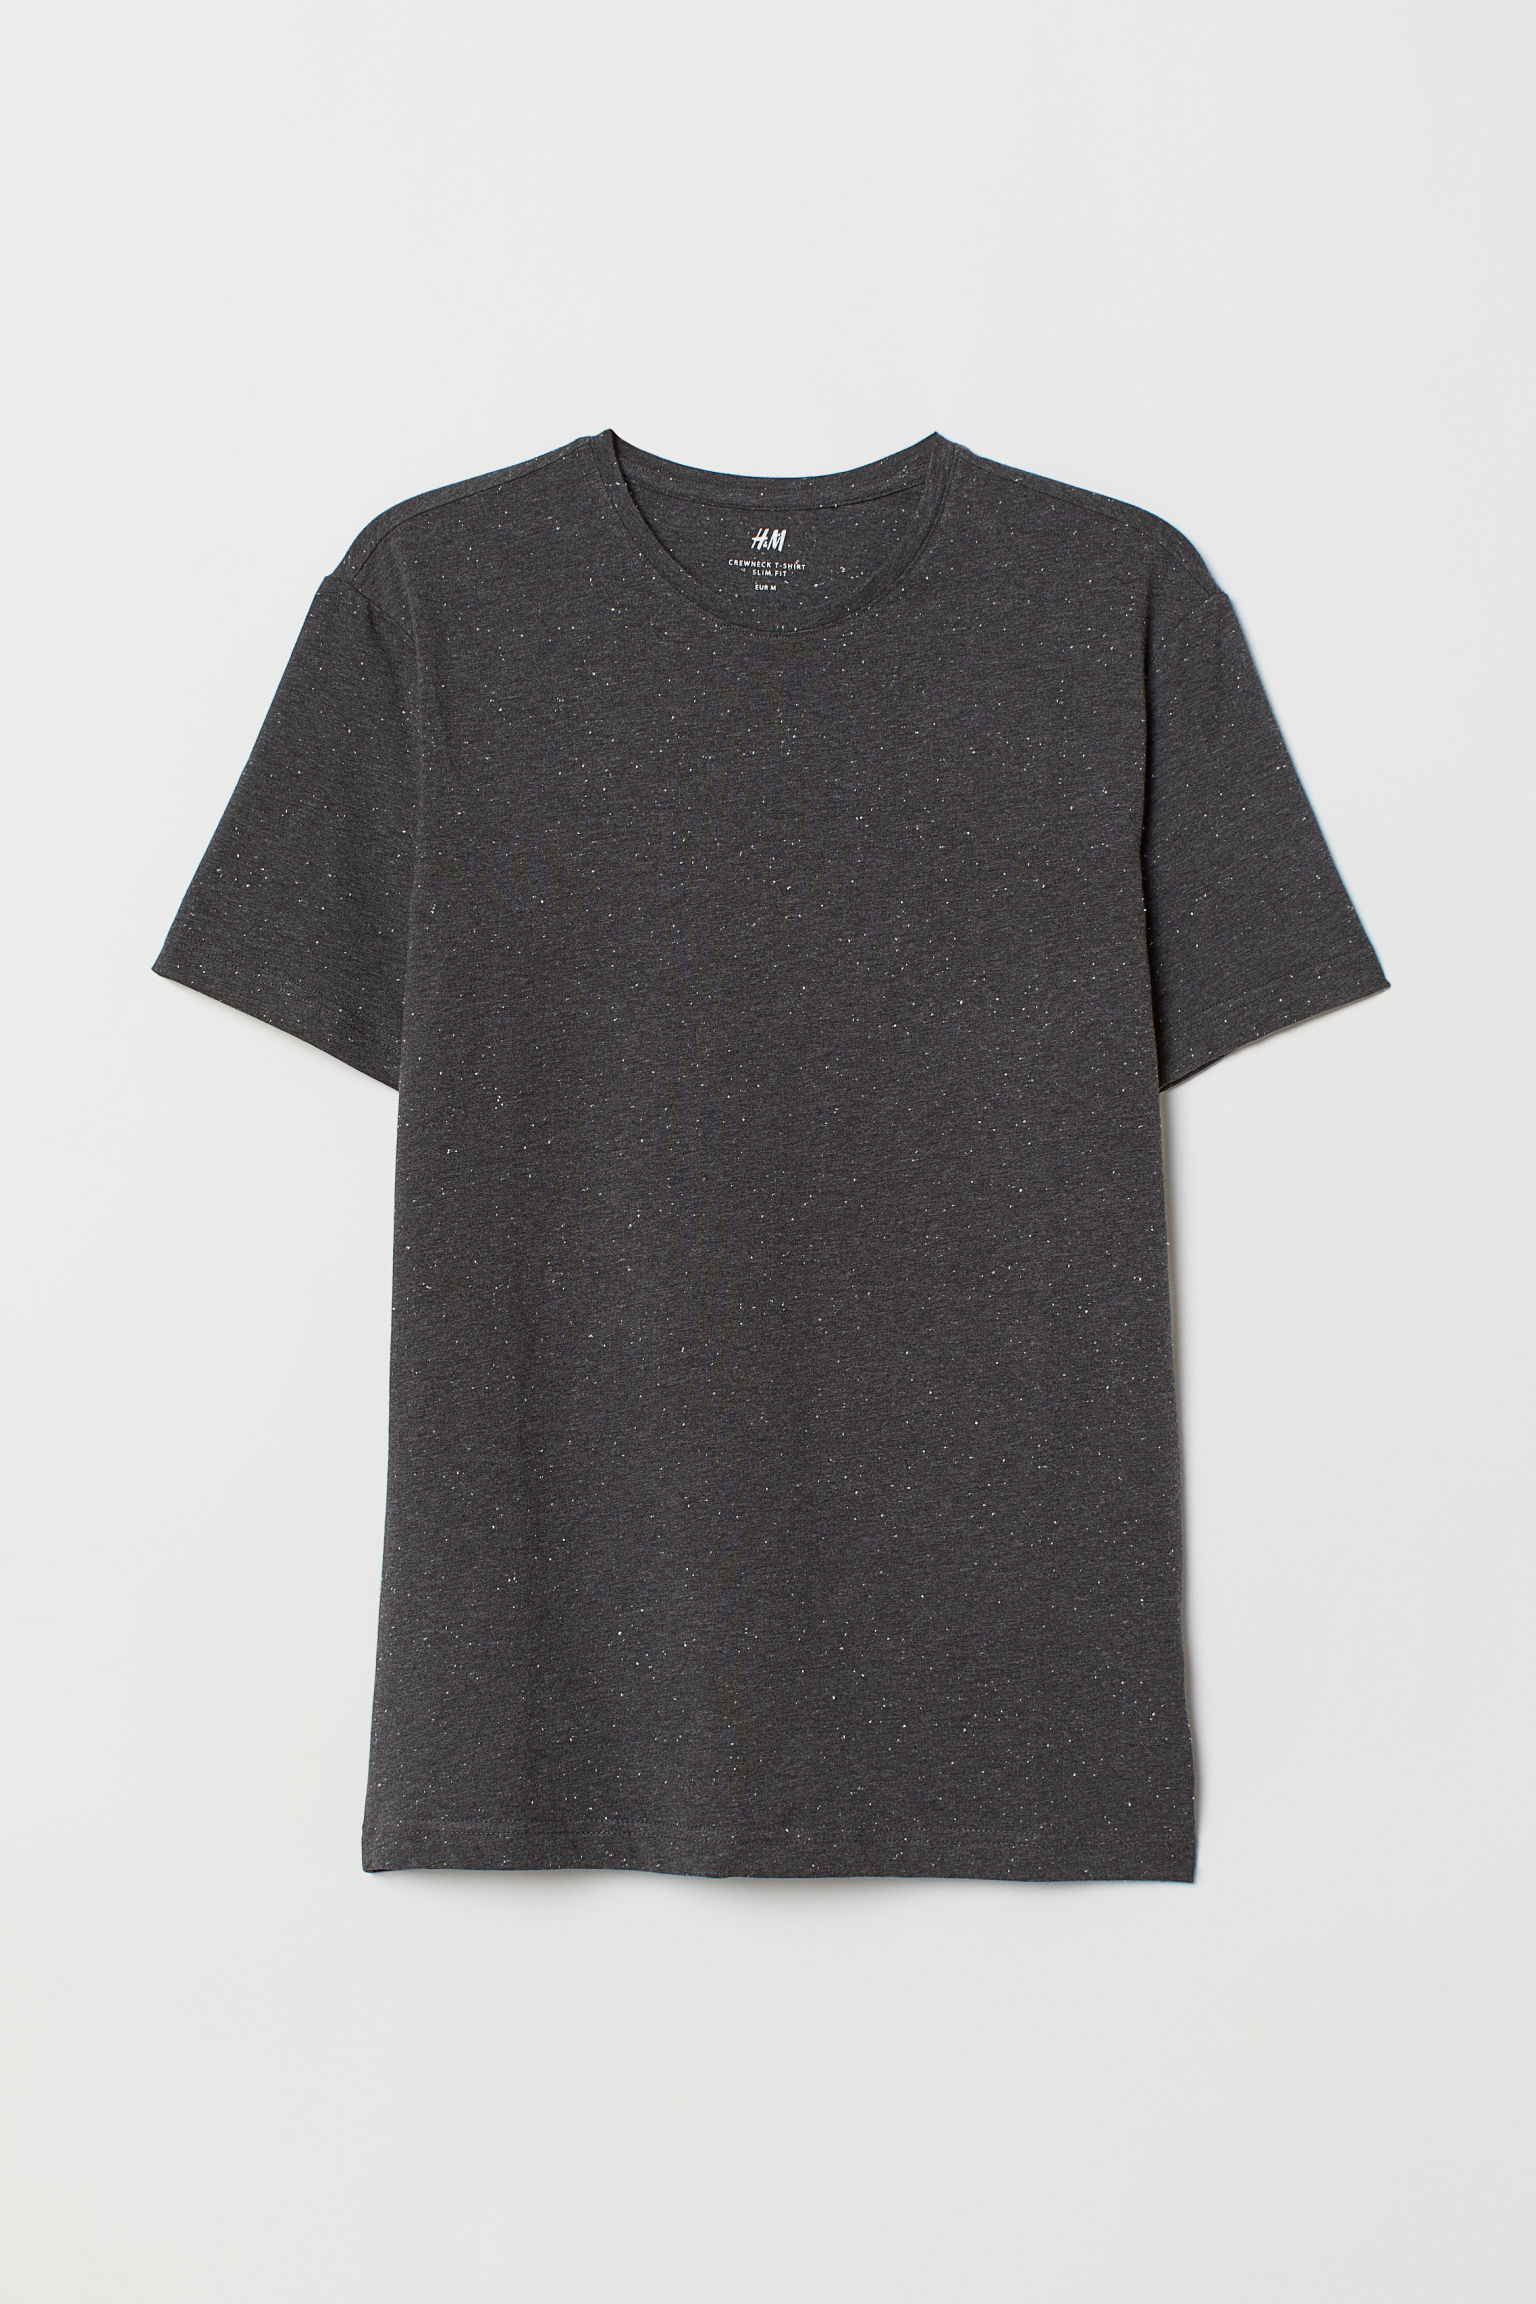 5997e8a37 Crew-neck T-shirt Slim fit - Black - Men | H&M US